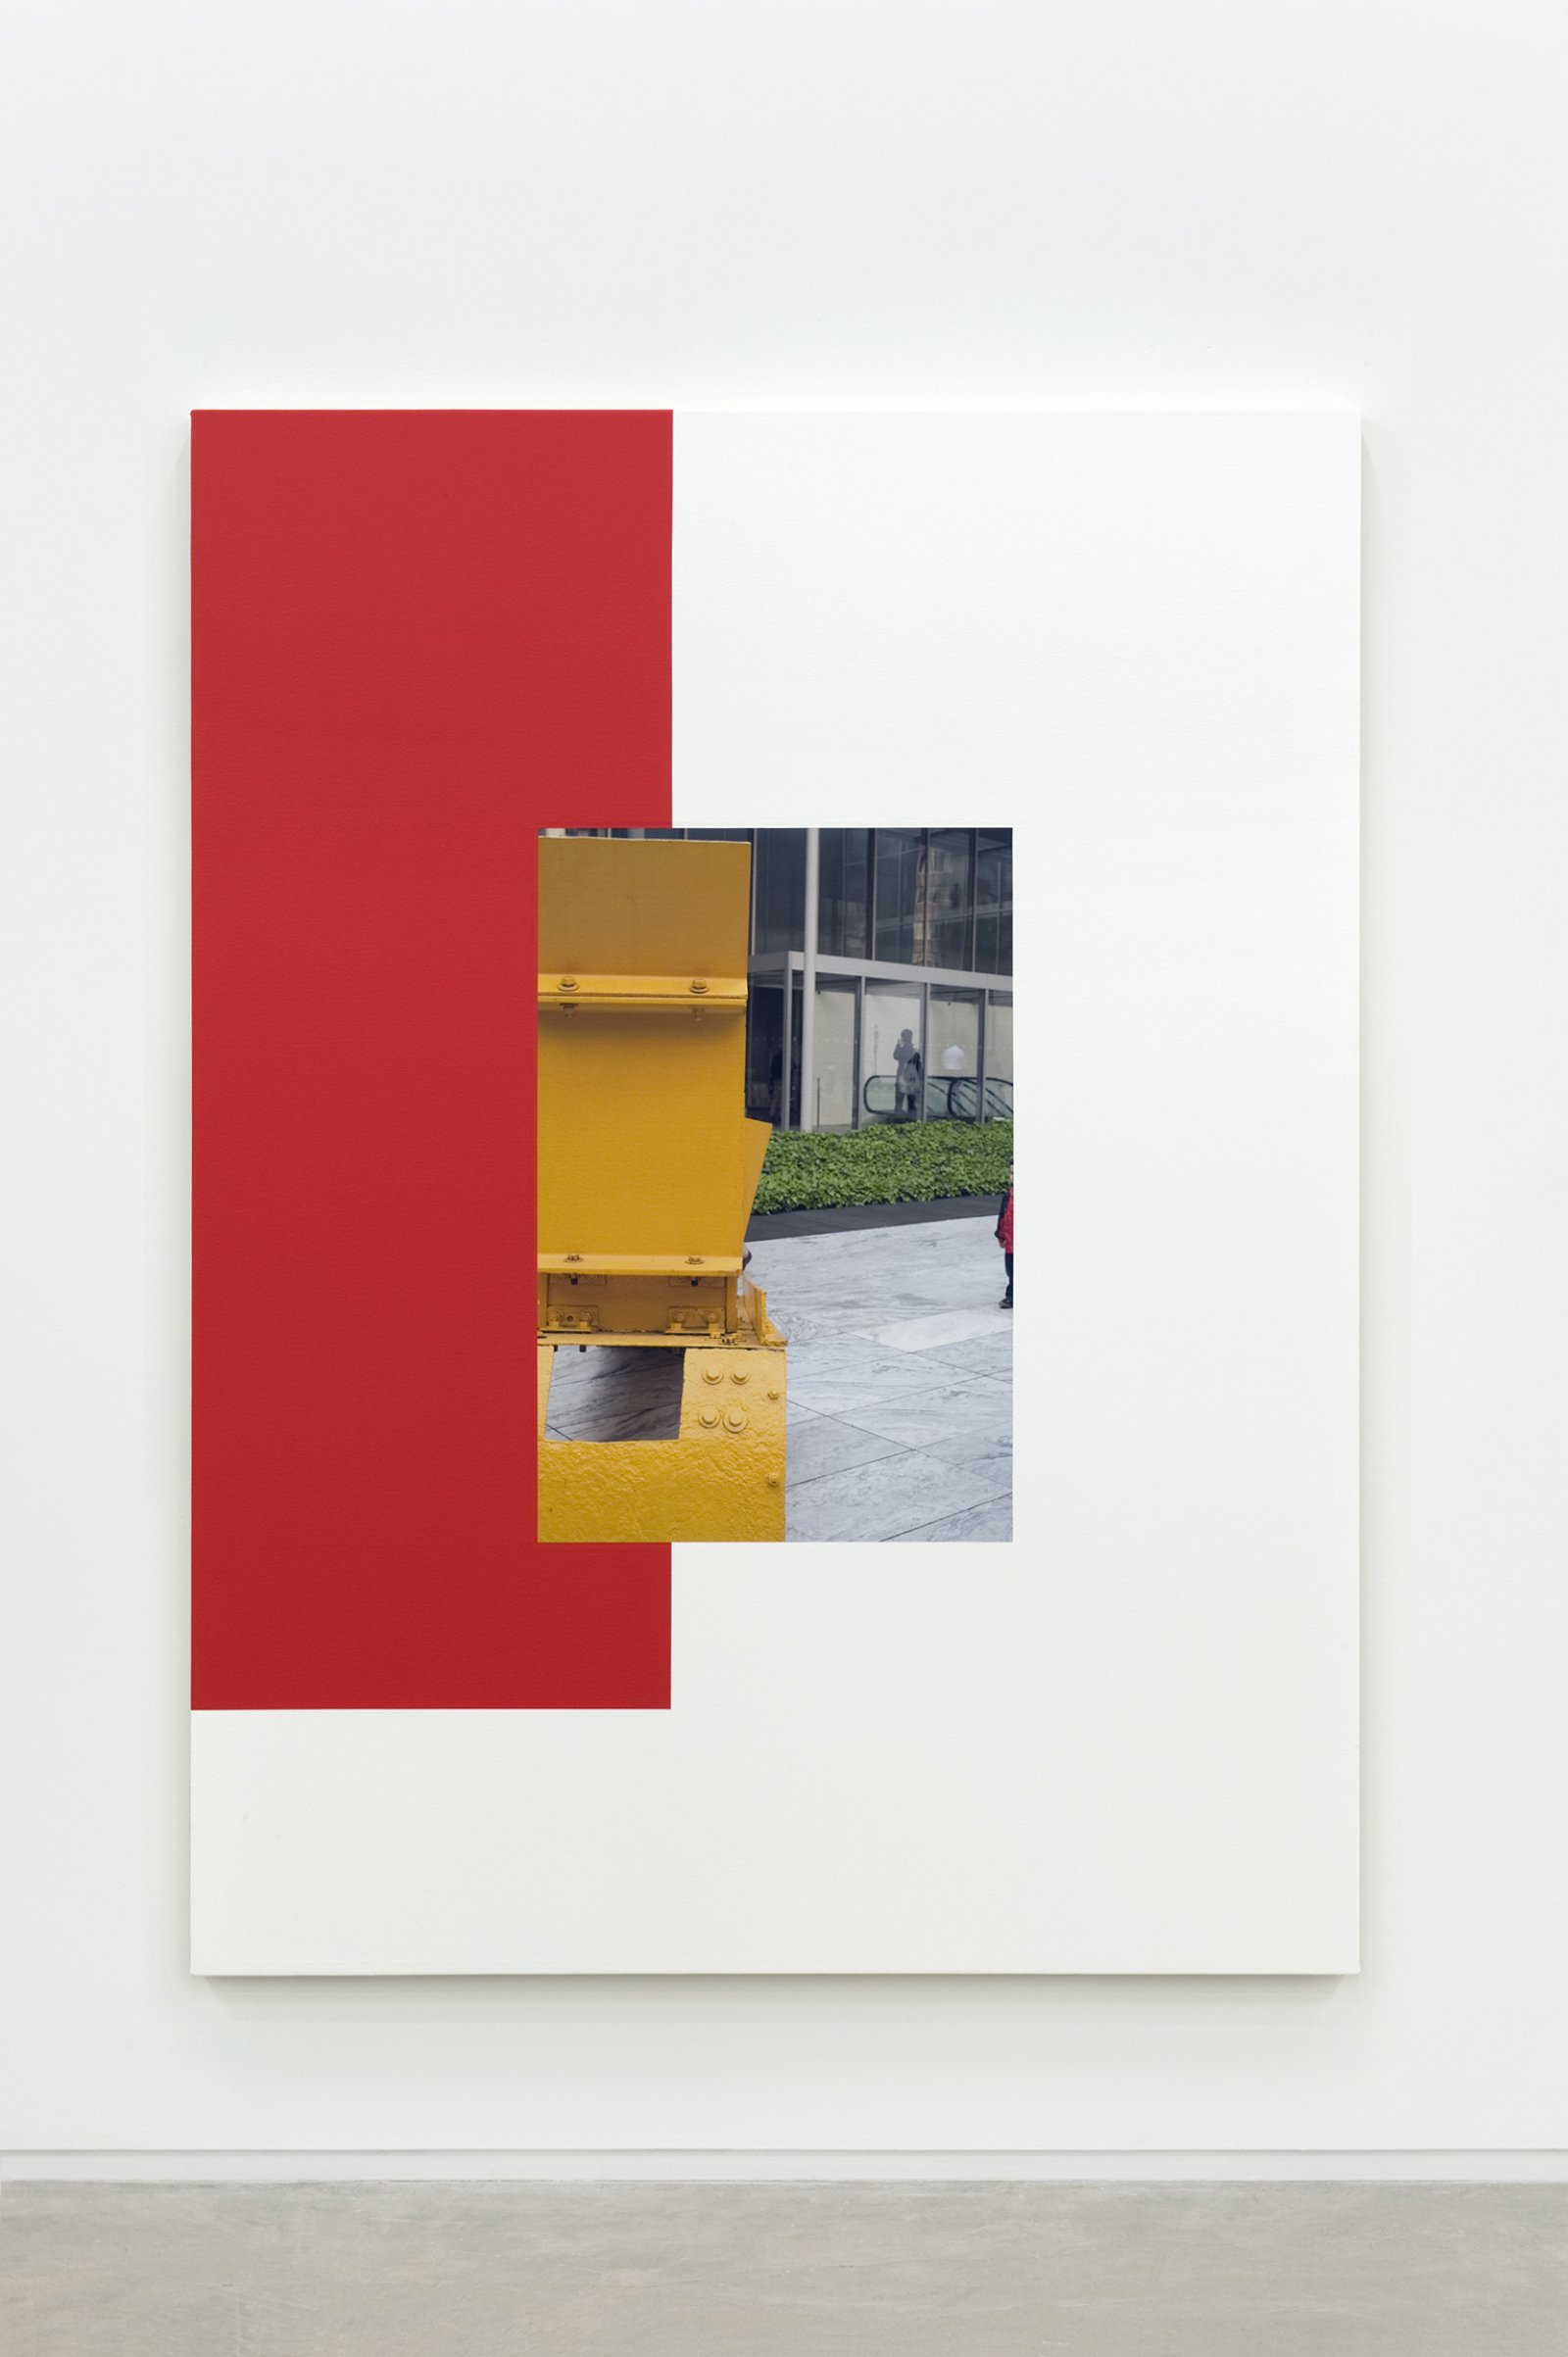 Ian Wallace,Abstract Sculpture (Red on White), 2011, photolaminate and acrylic on canvas, 80 x 60 in. (203 x 152 cm)